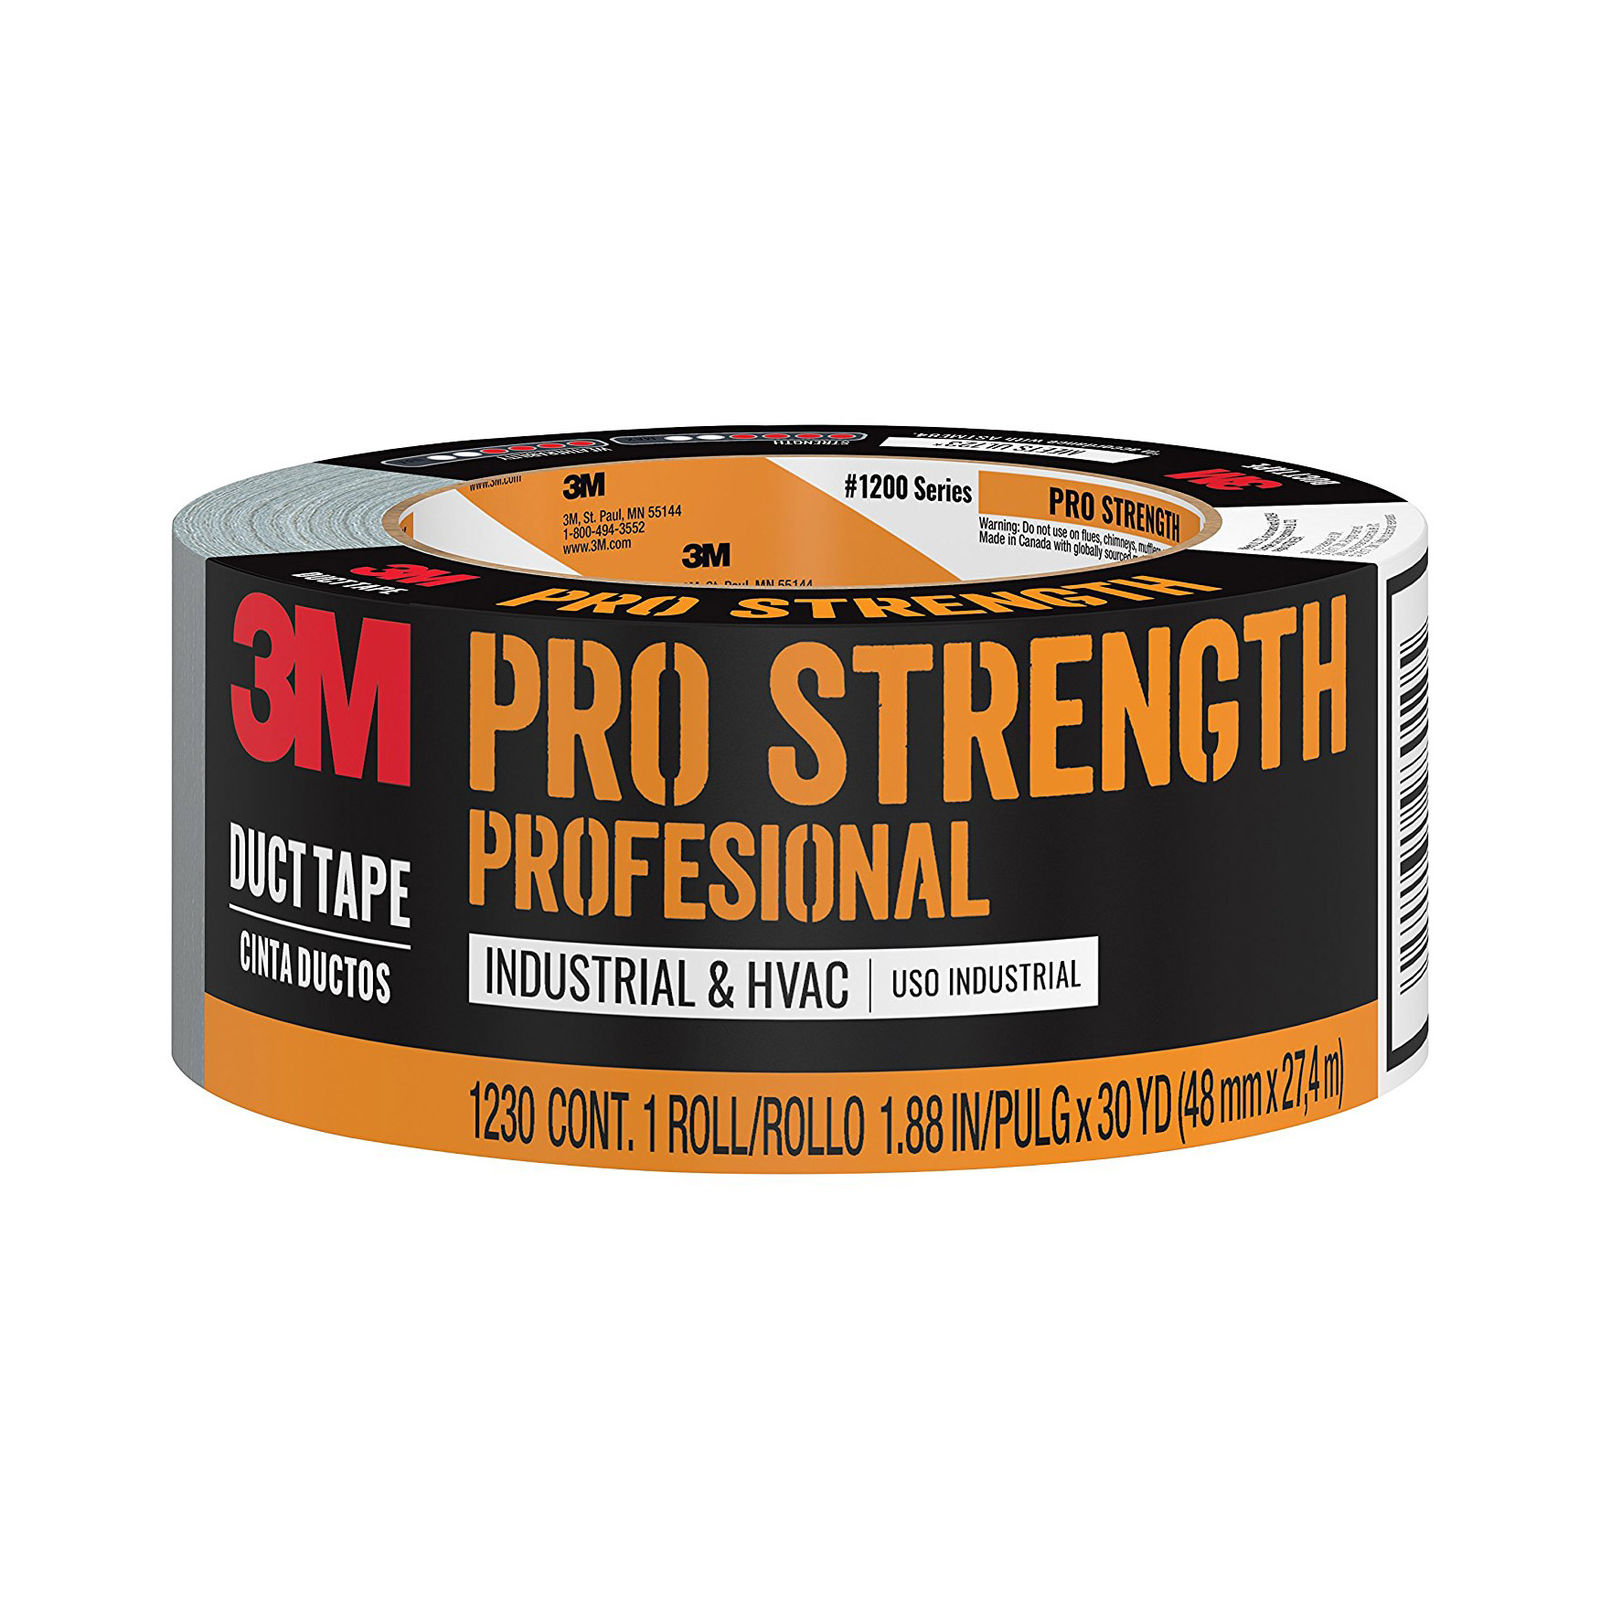 3M Pro Strength Duct Tape, 1230-C, 1.88 Inches by 30 Yards